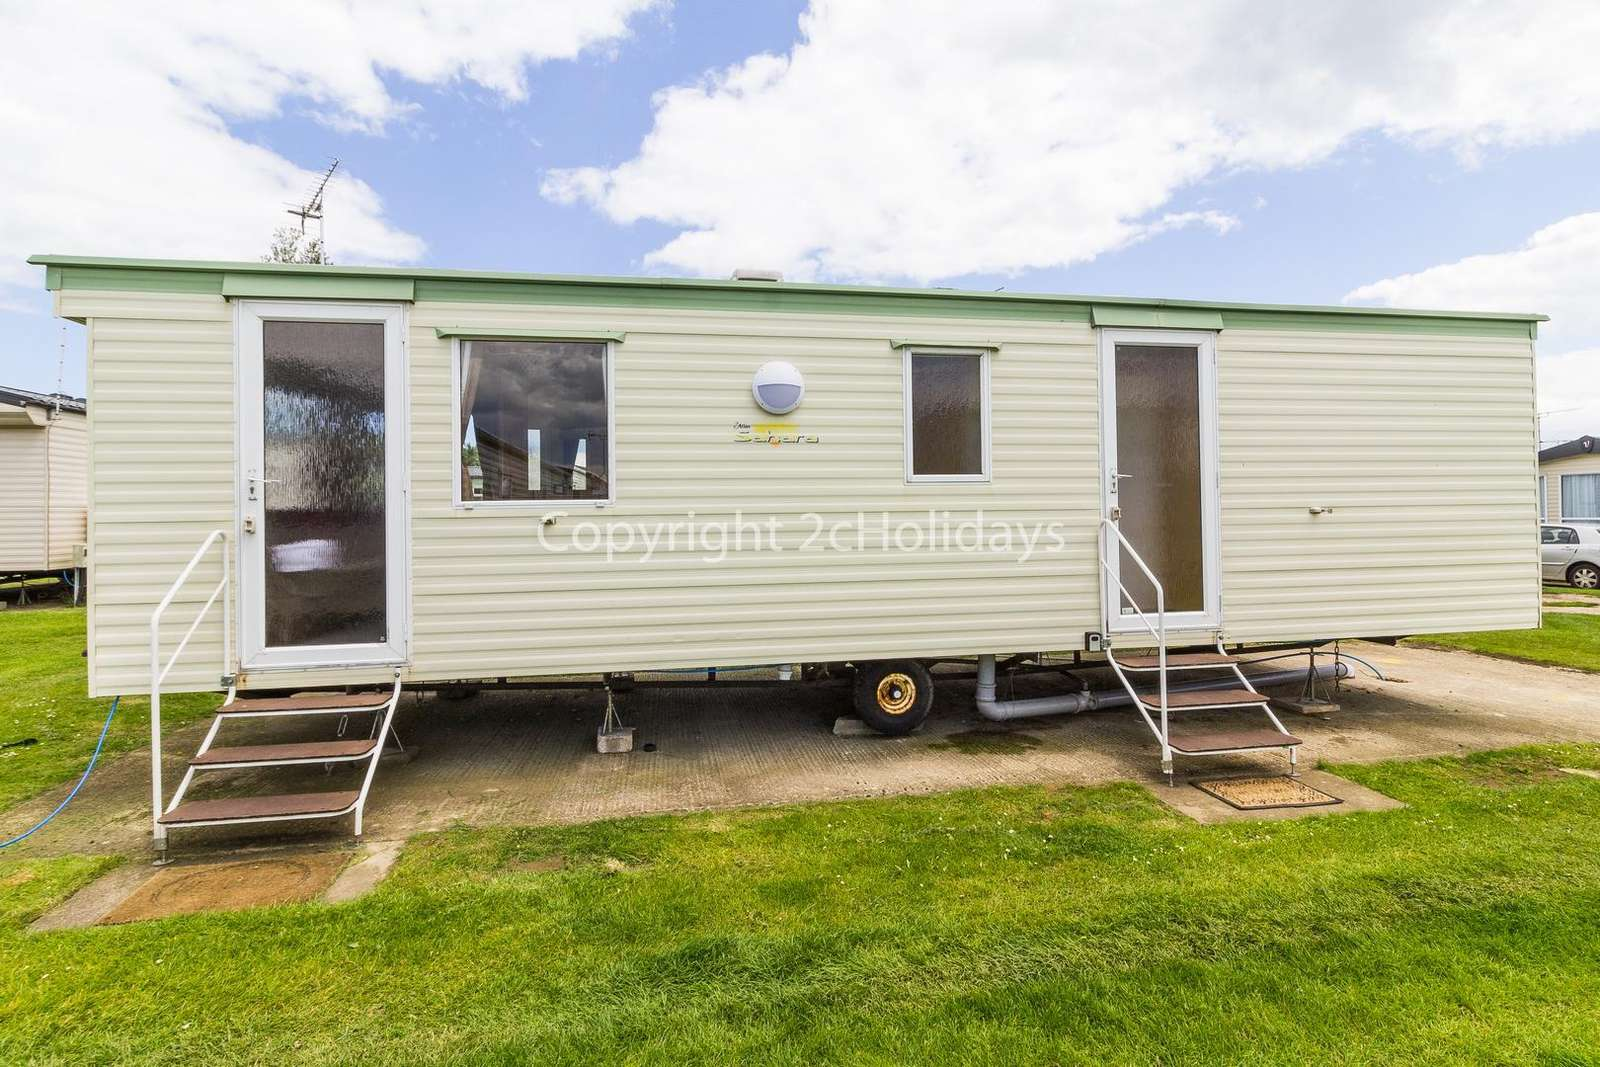 Great caravan with parking available next to accommodation!